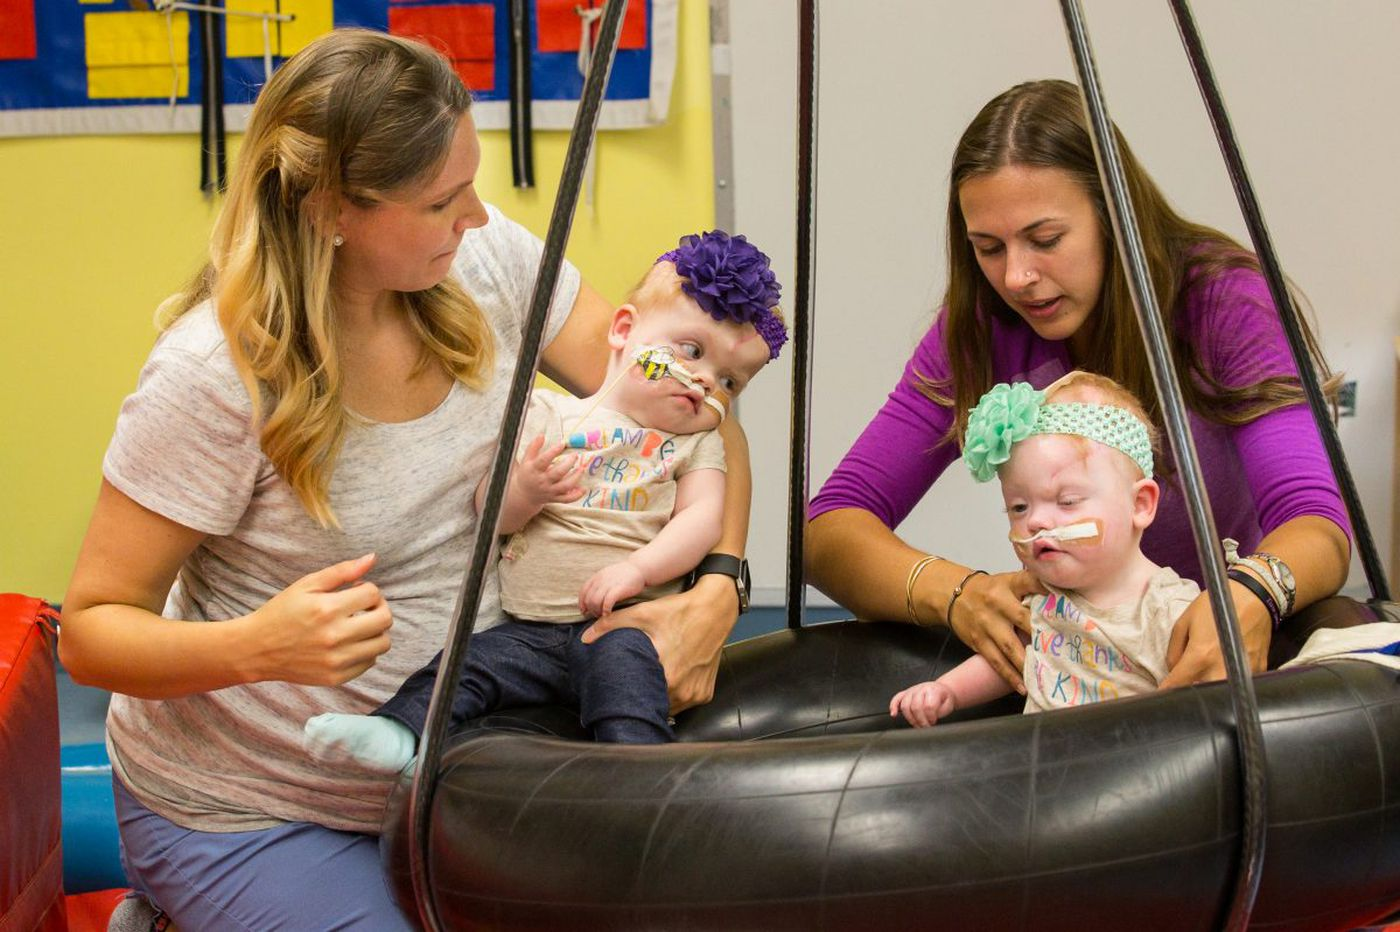 Born conjoined at the head, Delaney twins separated at Philadelphia hospital are doing 'fantastic'